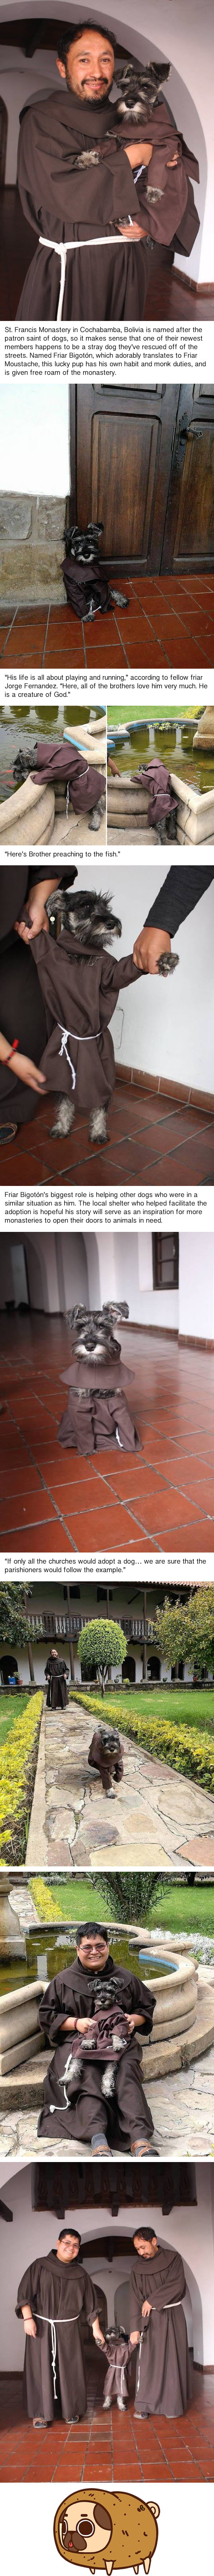 Monastery adopts a homeless dog, becomes Friar Moustache